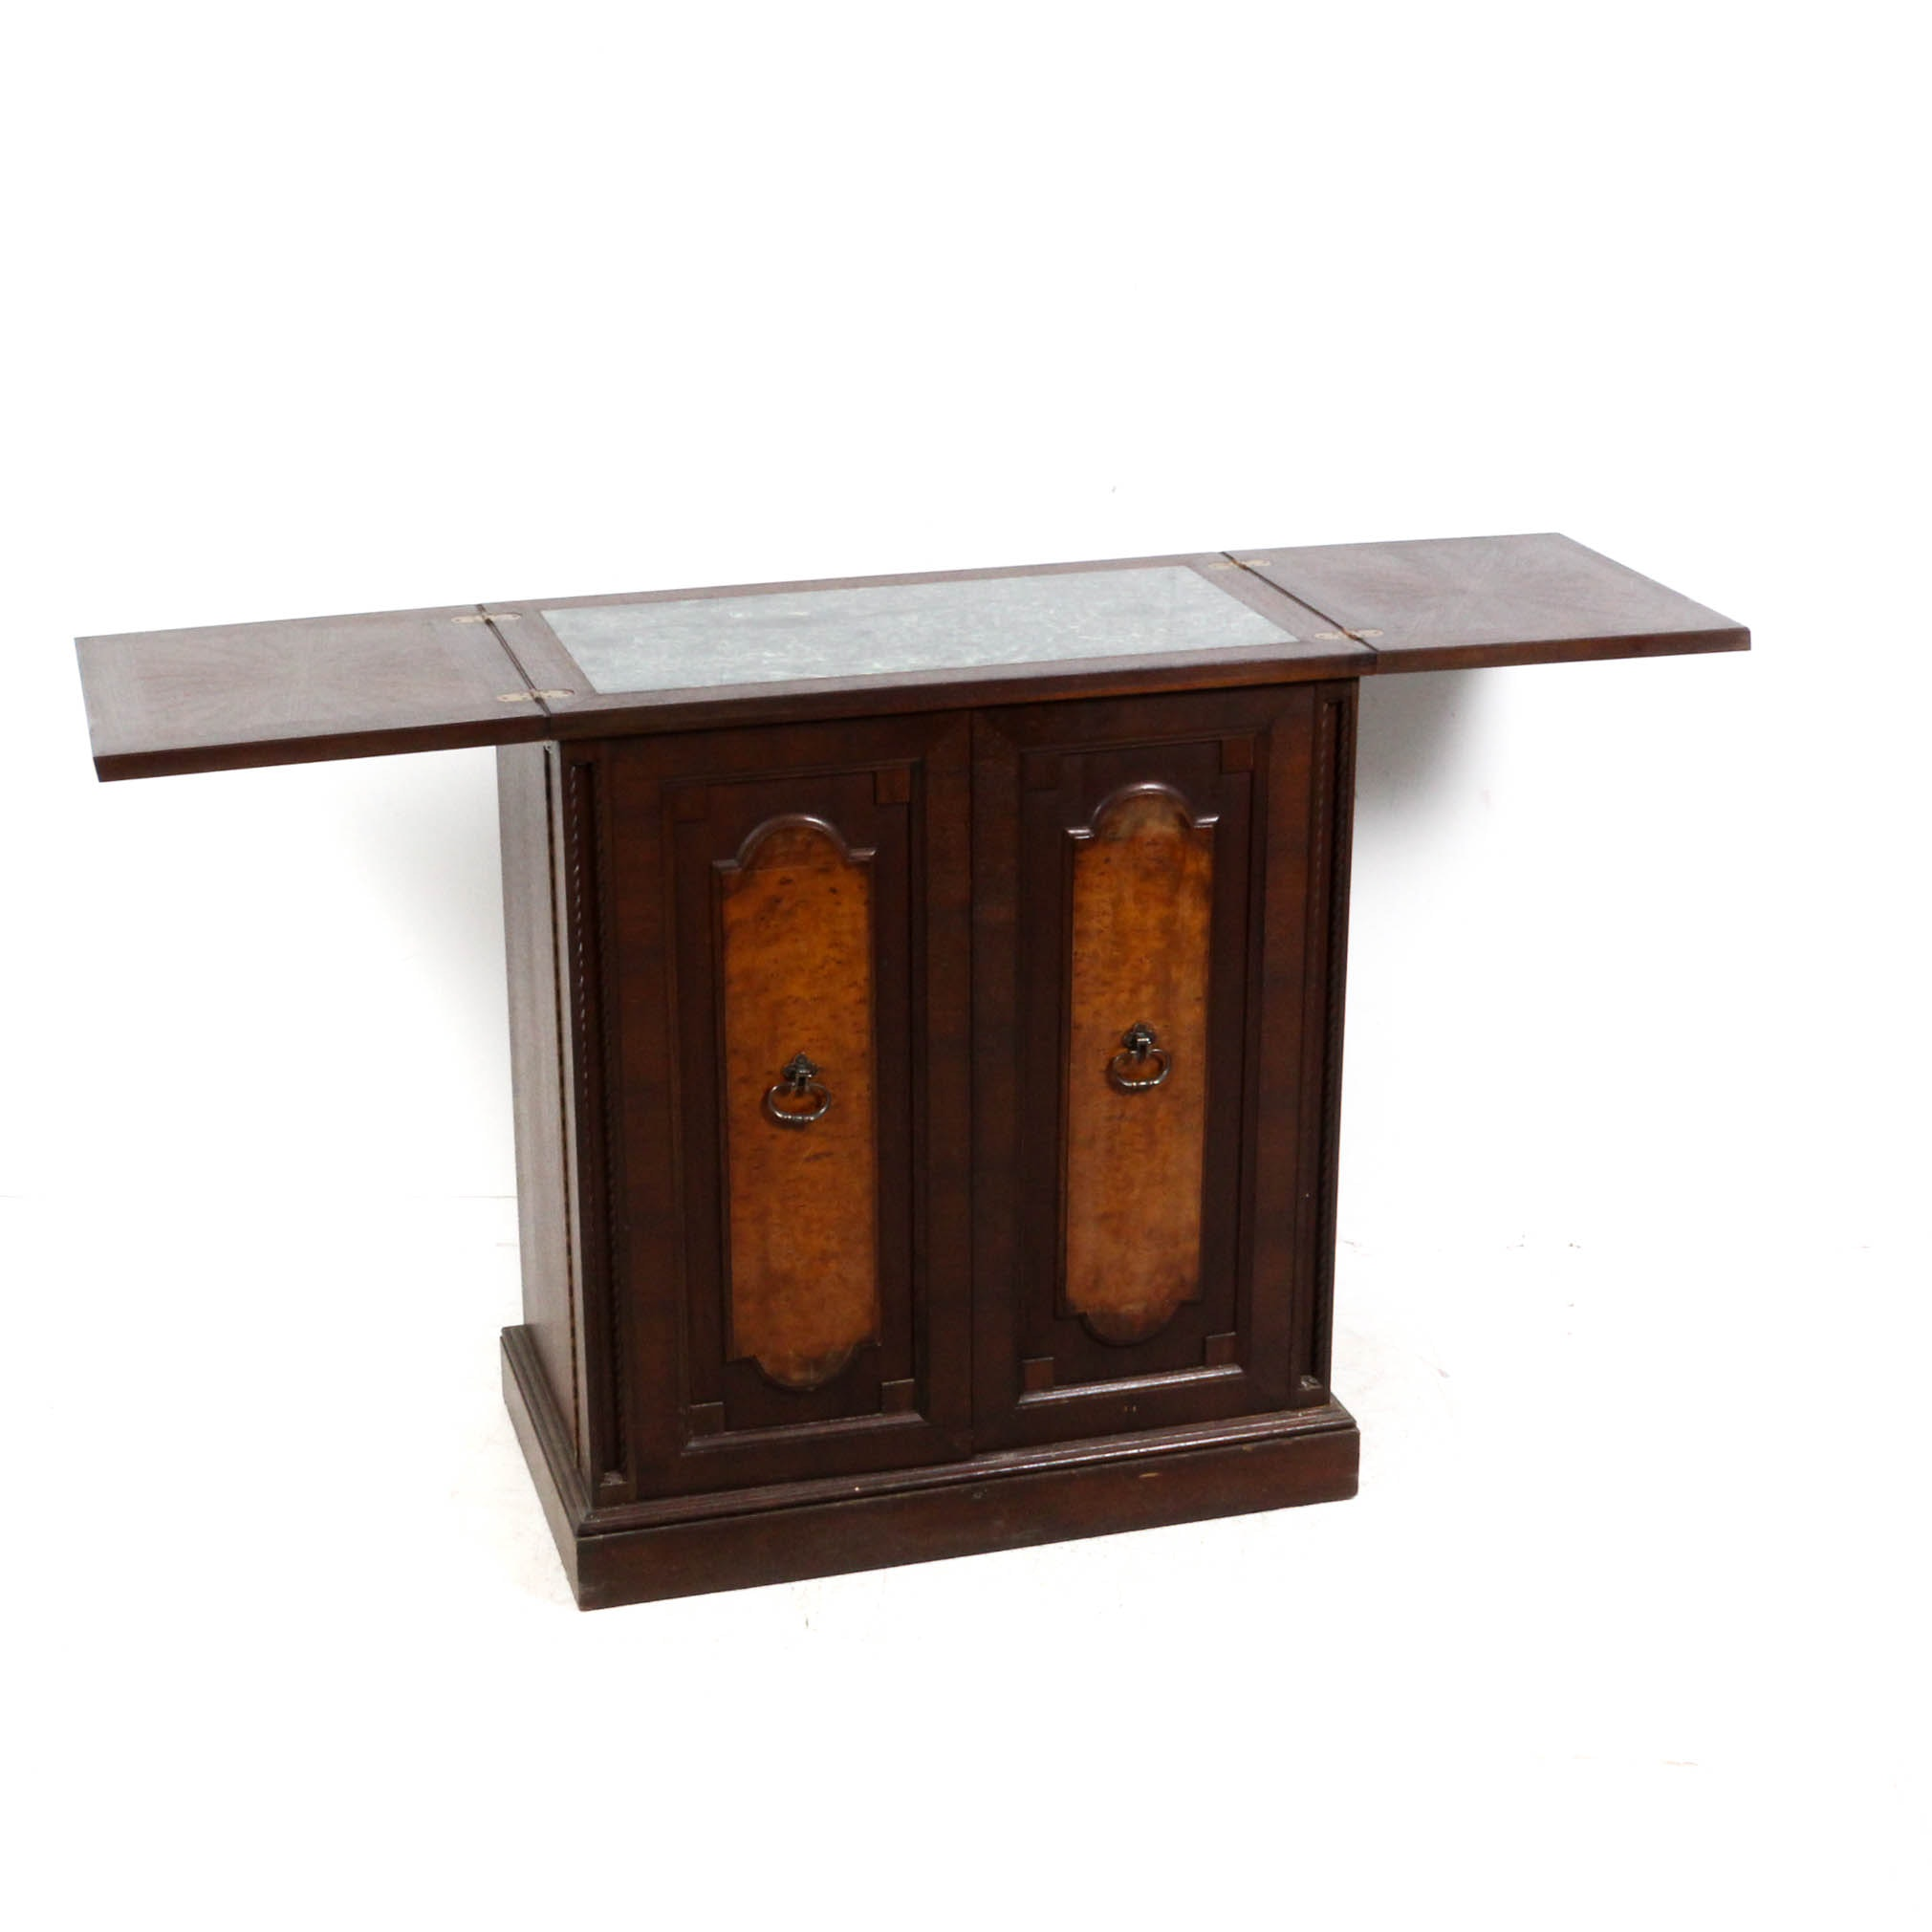 Mahogany Wooden Fold Out Bar with Granite Top